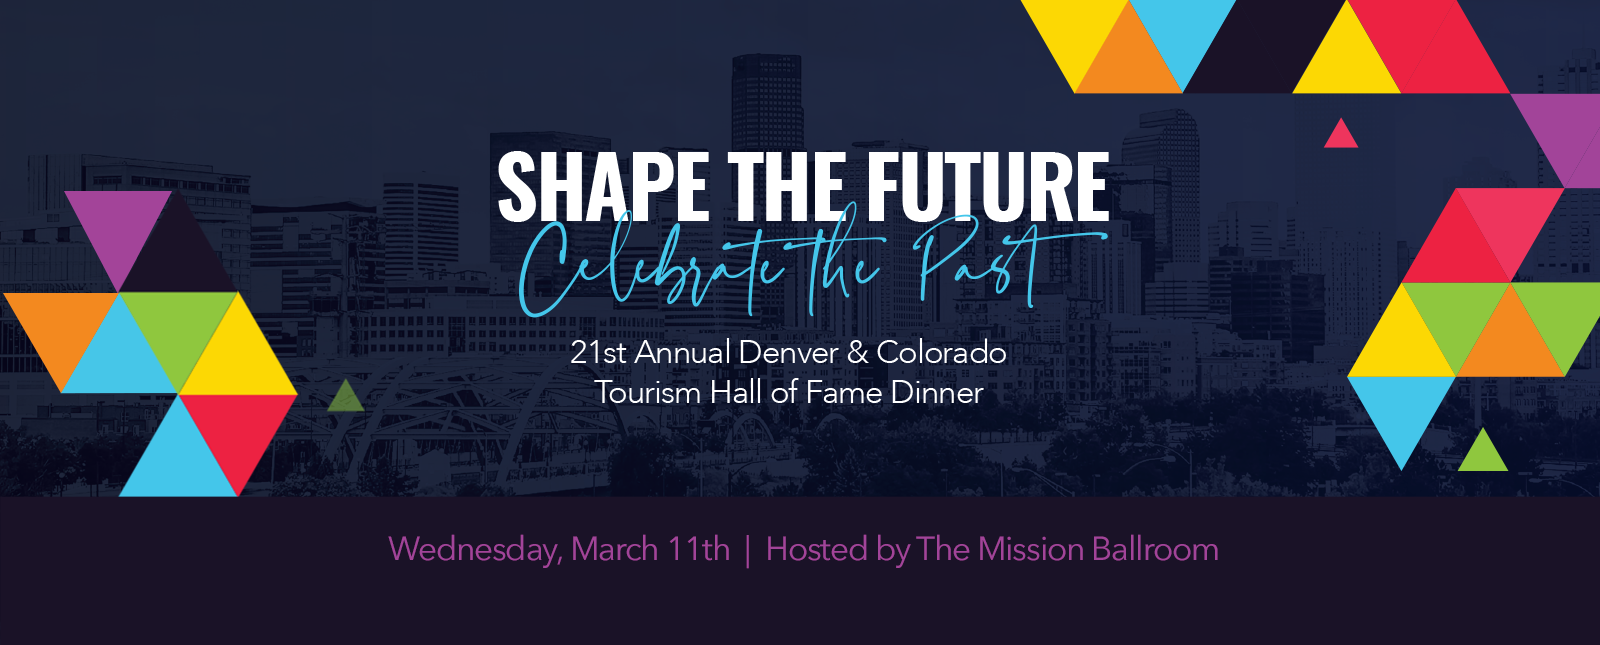 Shape the future, celebrate the past - 21st annual Denver and Colorado Tourism Hall of Fame Dinner - Wednesday, March 11th at The Mission Ballroom